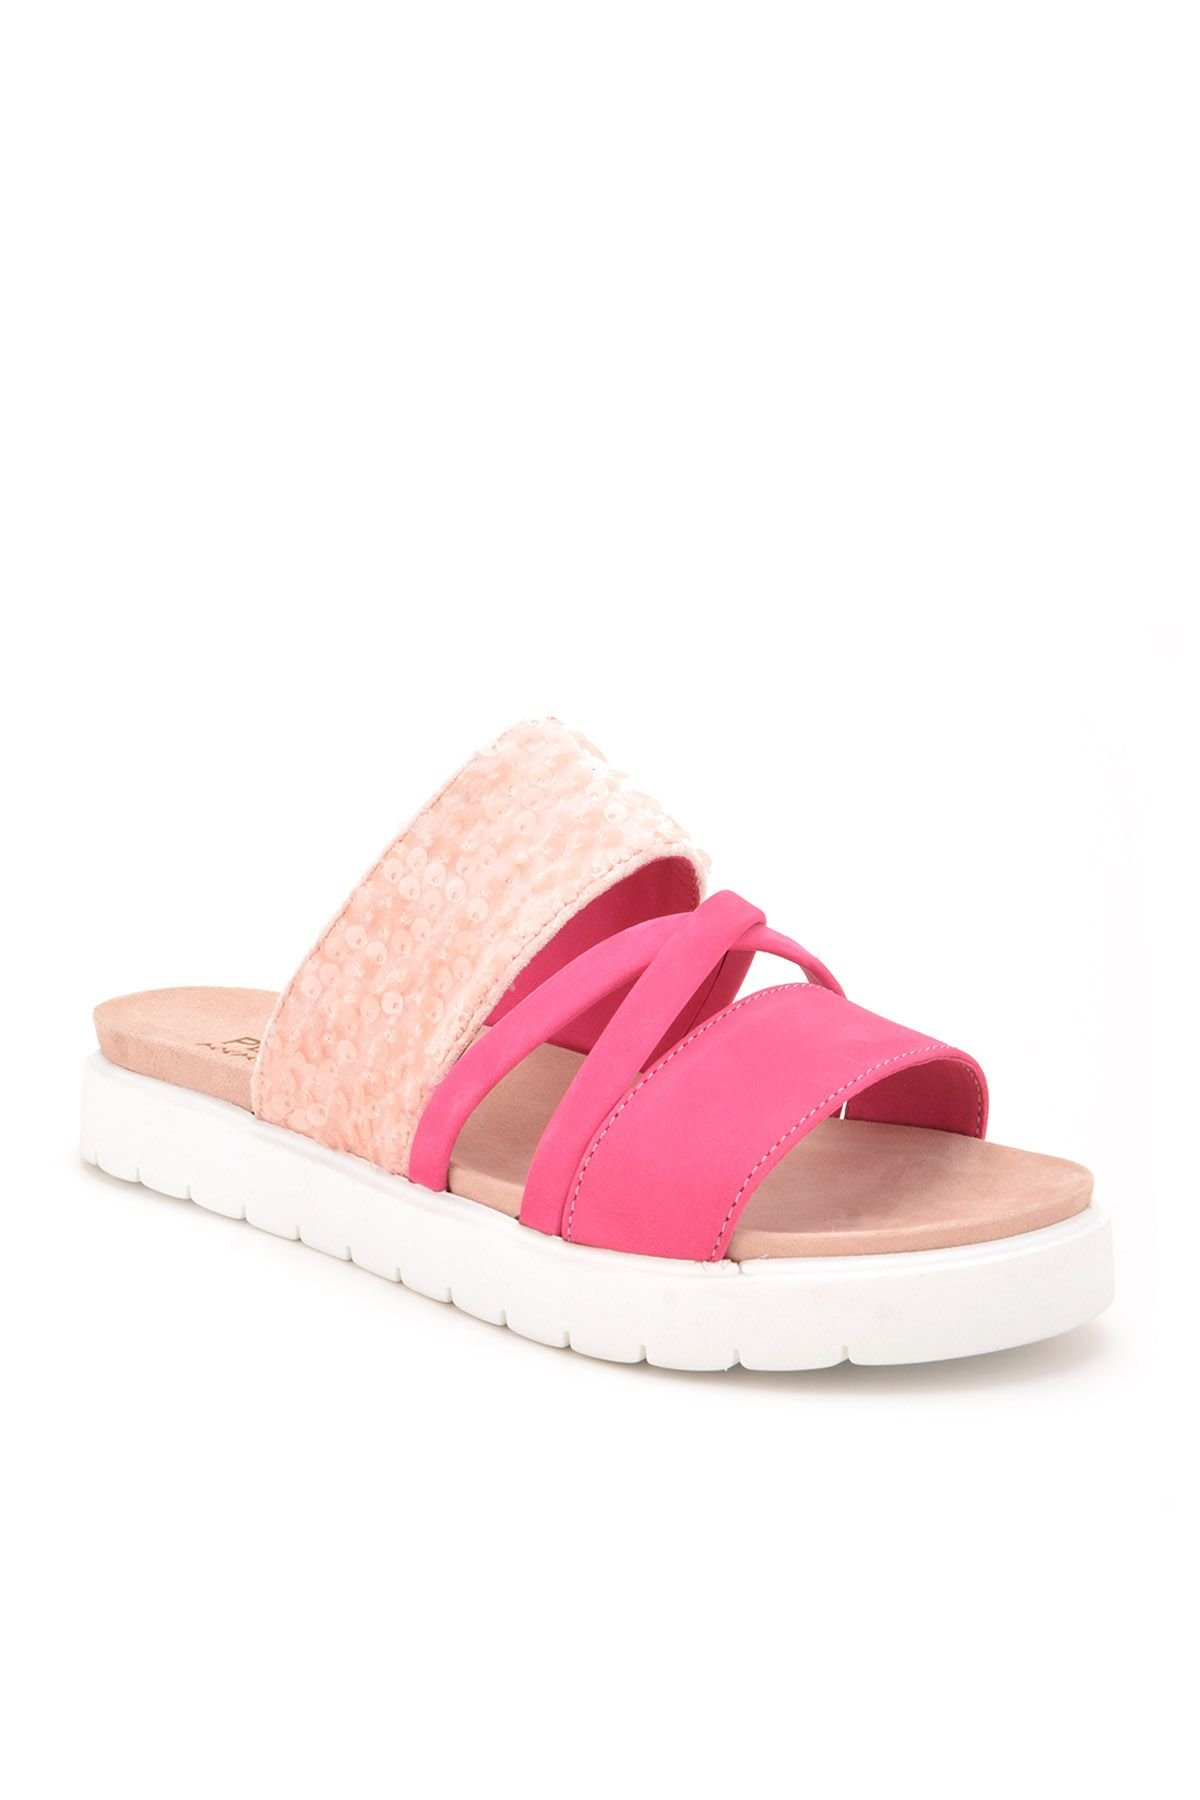 Pegia Alesia Women Slippers From Genuine Leather REC-005 Pink